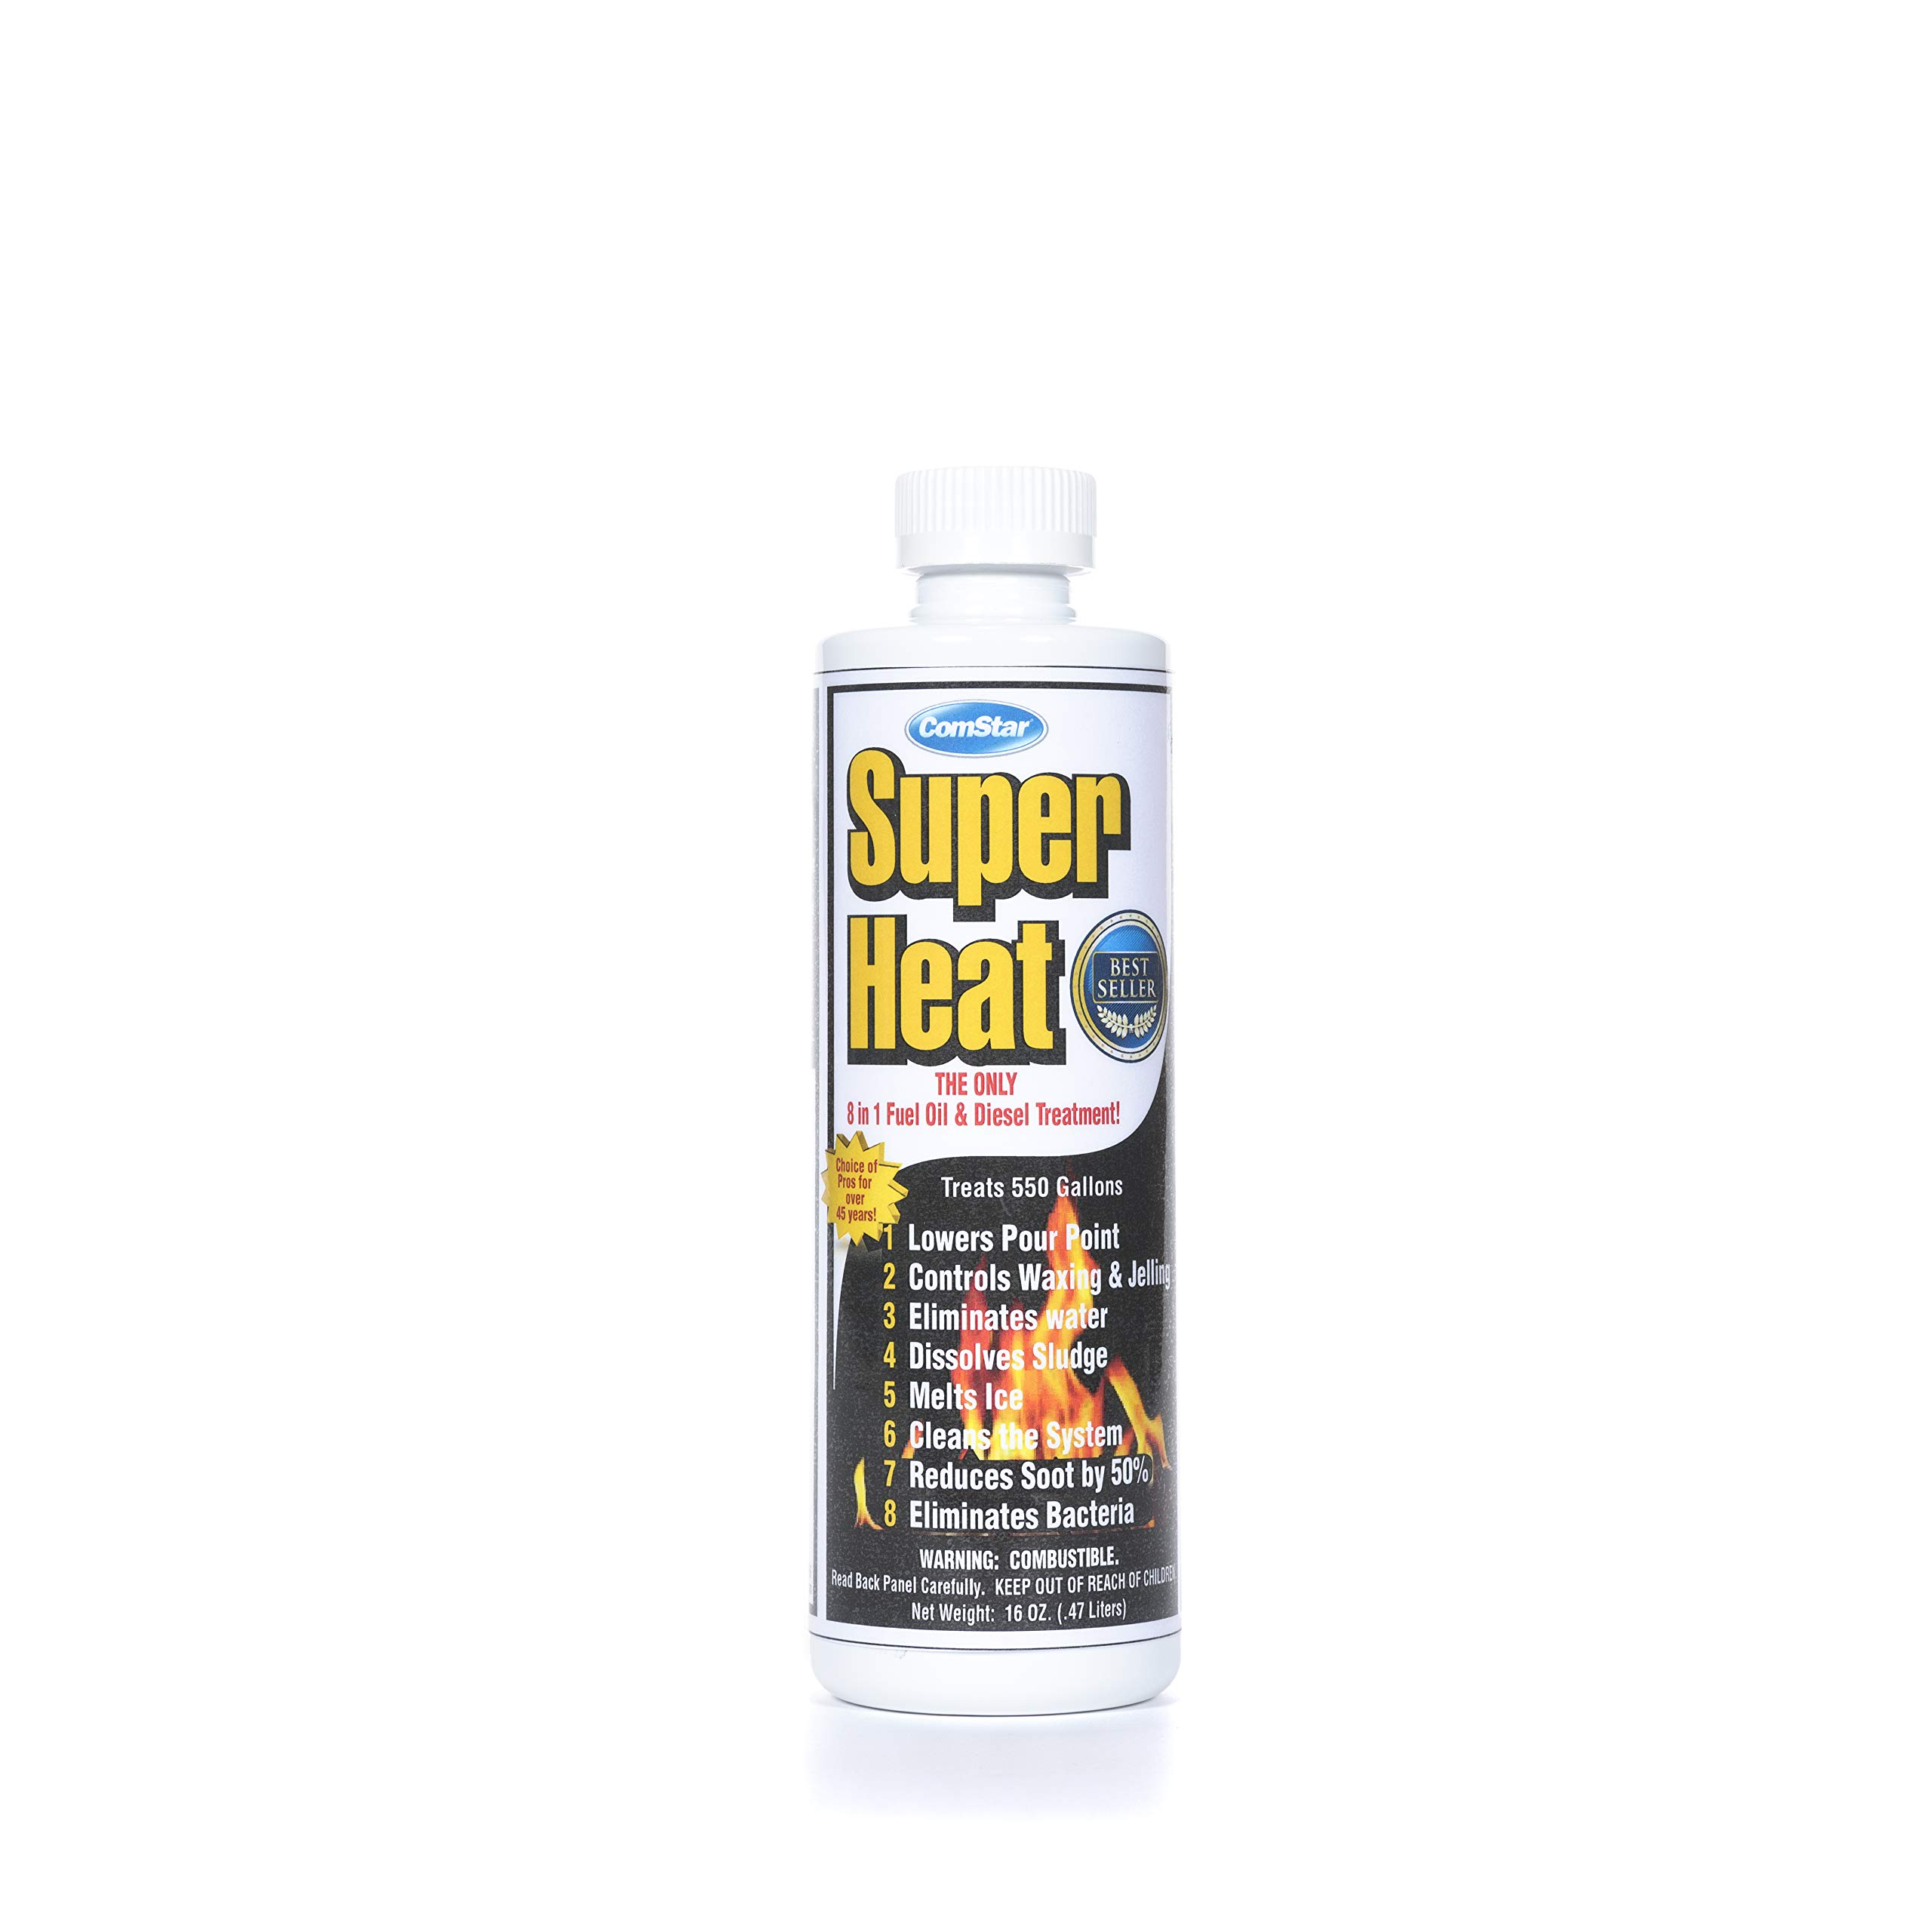 ComStar 60-130 Super Heat 8-In-1 Heating and Fuel Oil Treatment, 16 oz by Comstar